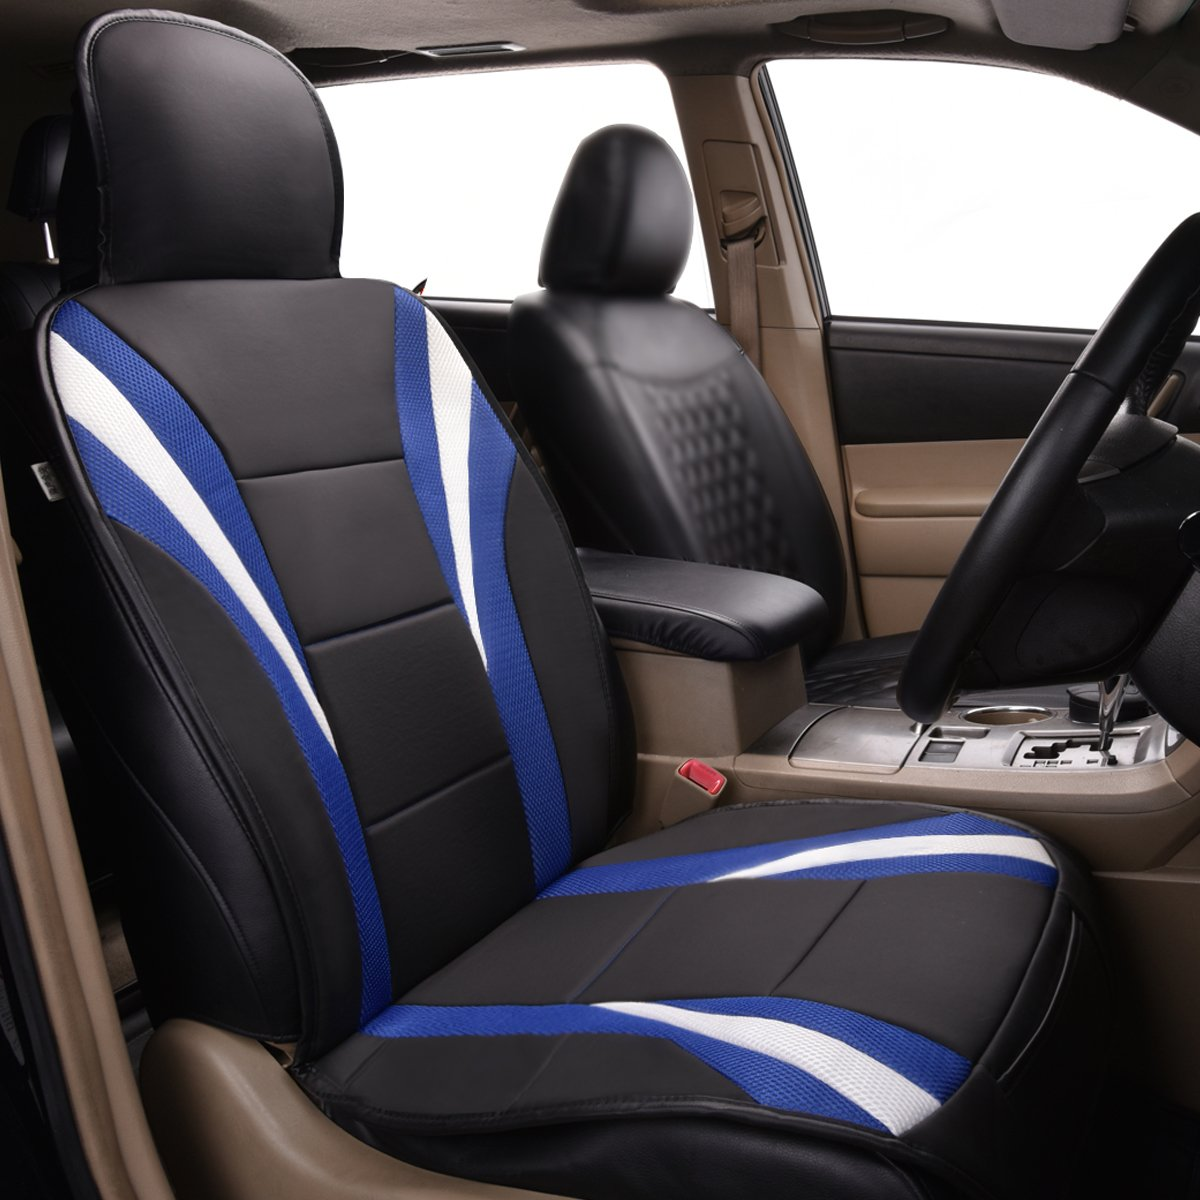 CAR PASS Delux Sideless Universal Fit Car Seat Cover FOR 1 SET With carriage Bag NEW ARRIVAL Two set Black and blue color